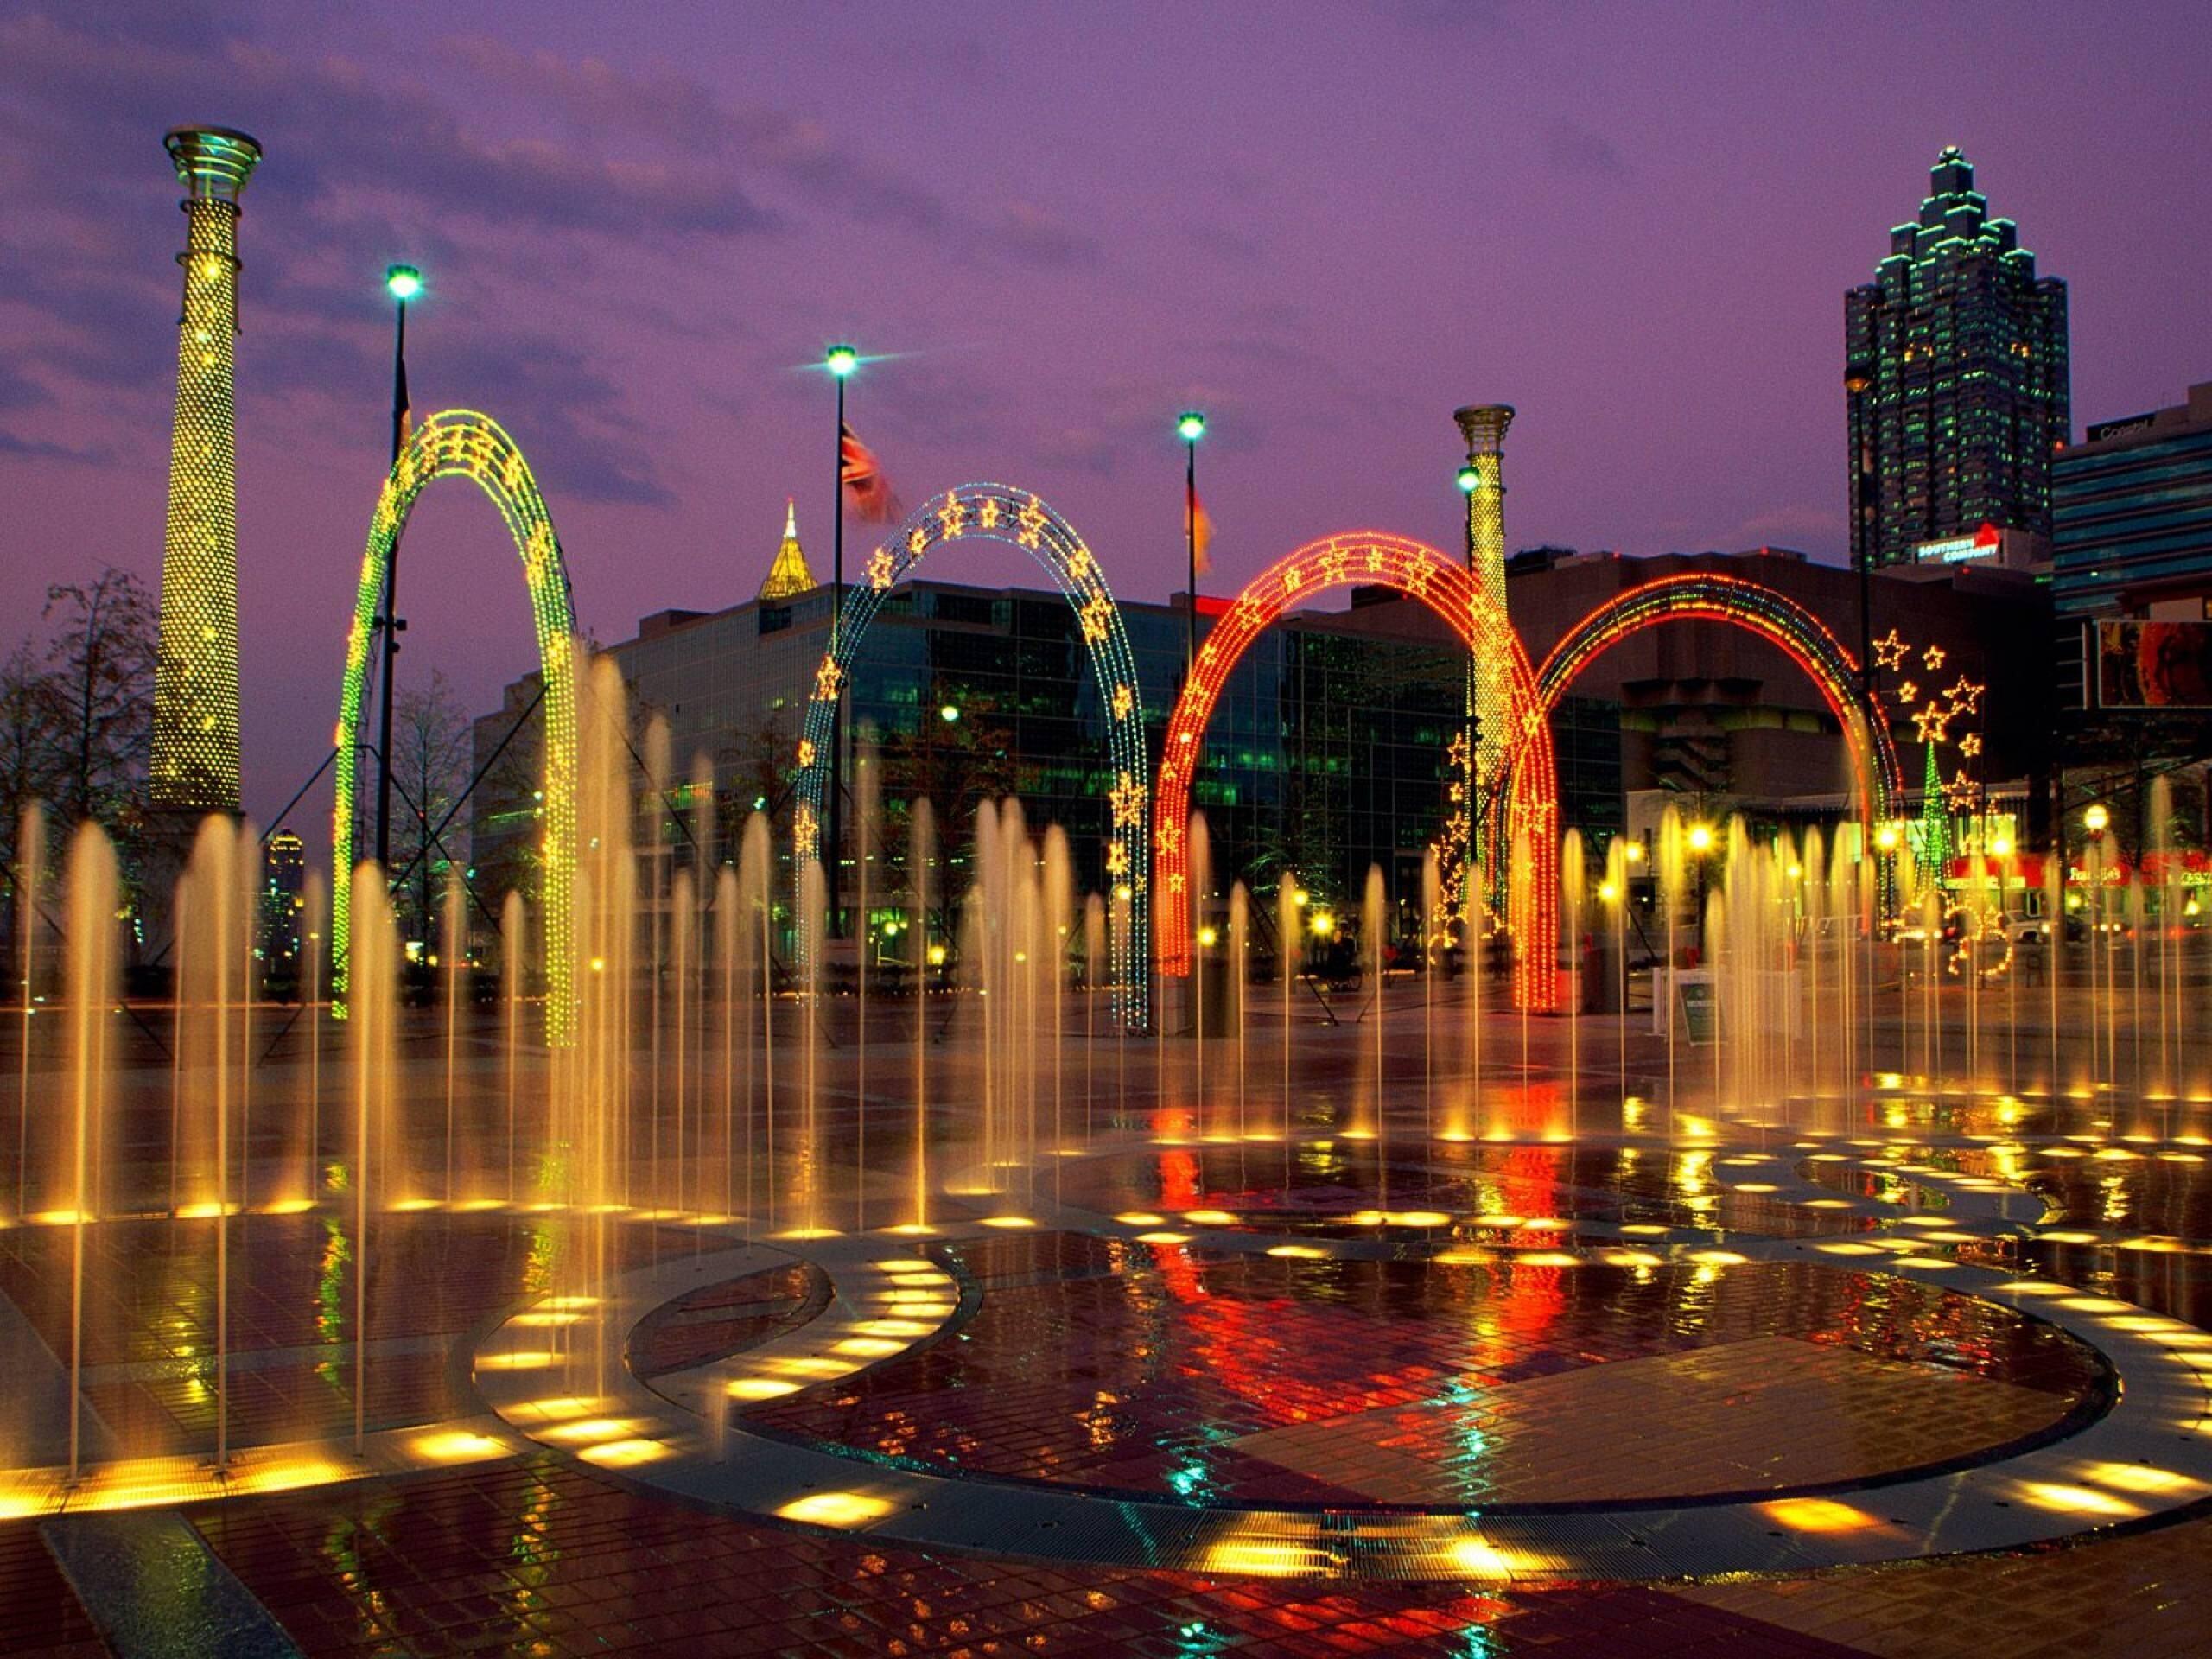 Amazing Fountain Of Centennial Olympic Park In City Georgia United - Is georgia in the united states